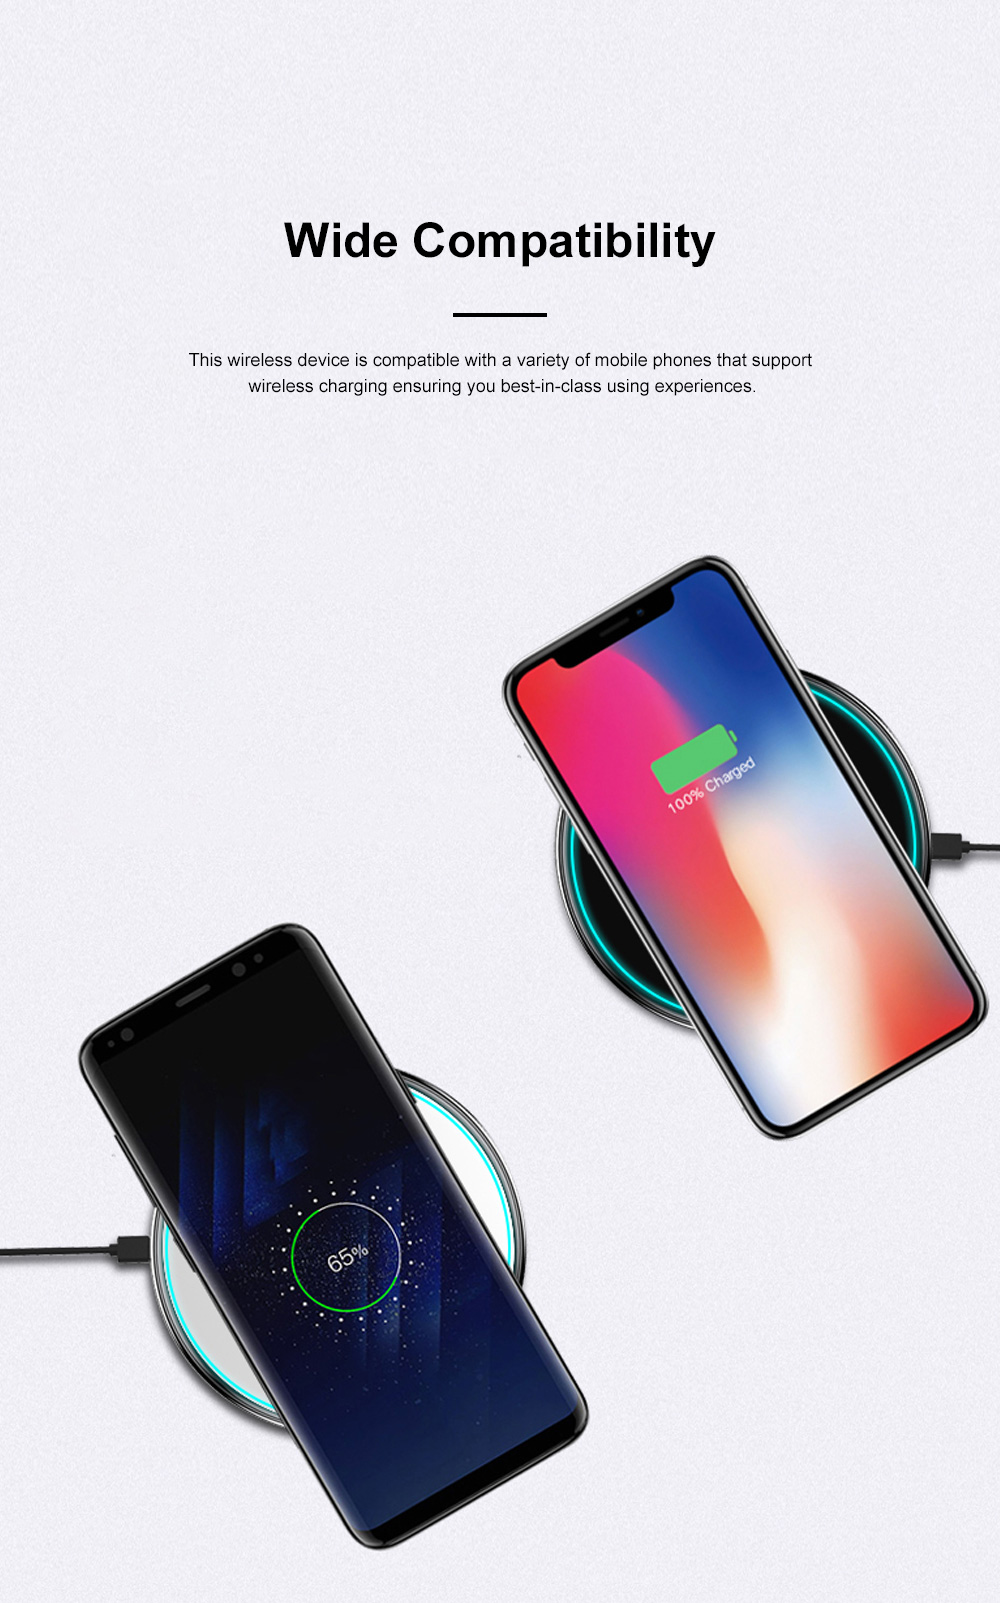 MIPOW Thin Portable Zinc Alloy Tempered Glass Quick Charging Wireless Charger for iPhone Xiaomi Samsung Huawei Nokia 8